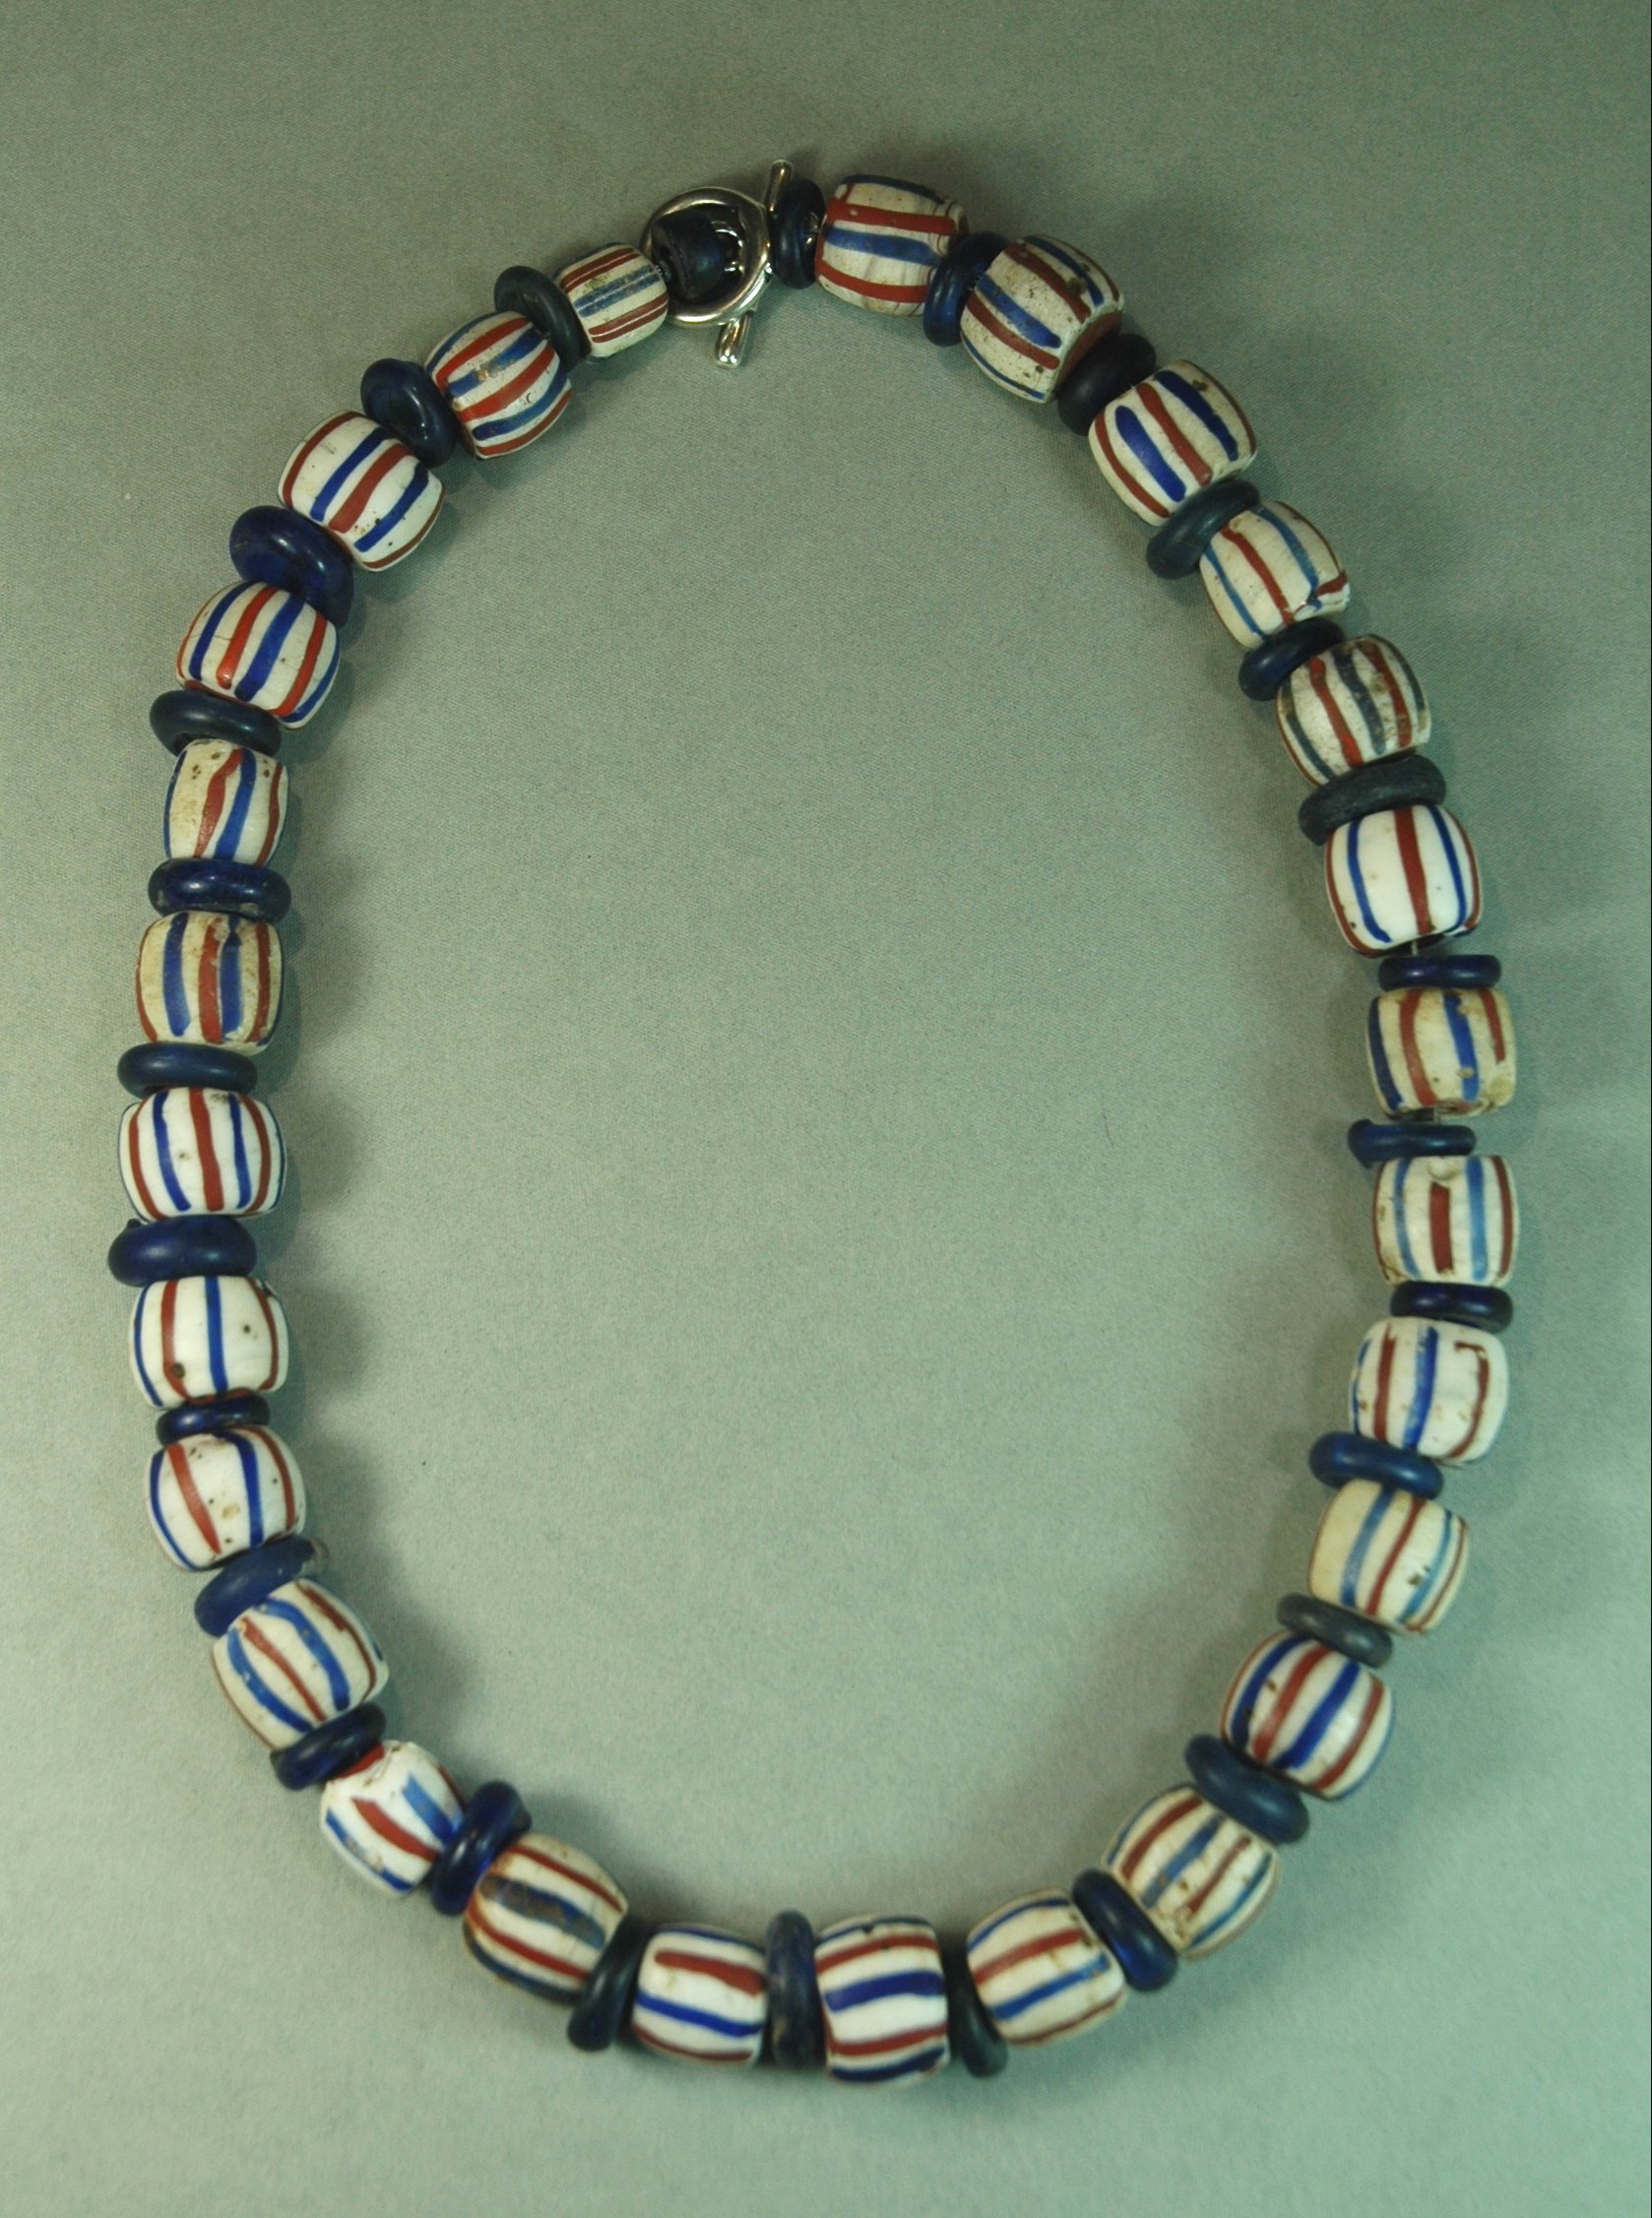 Necklace with Venice beads